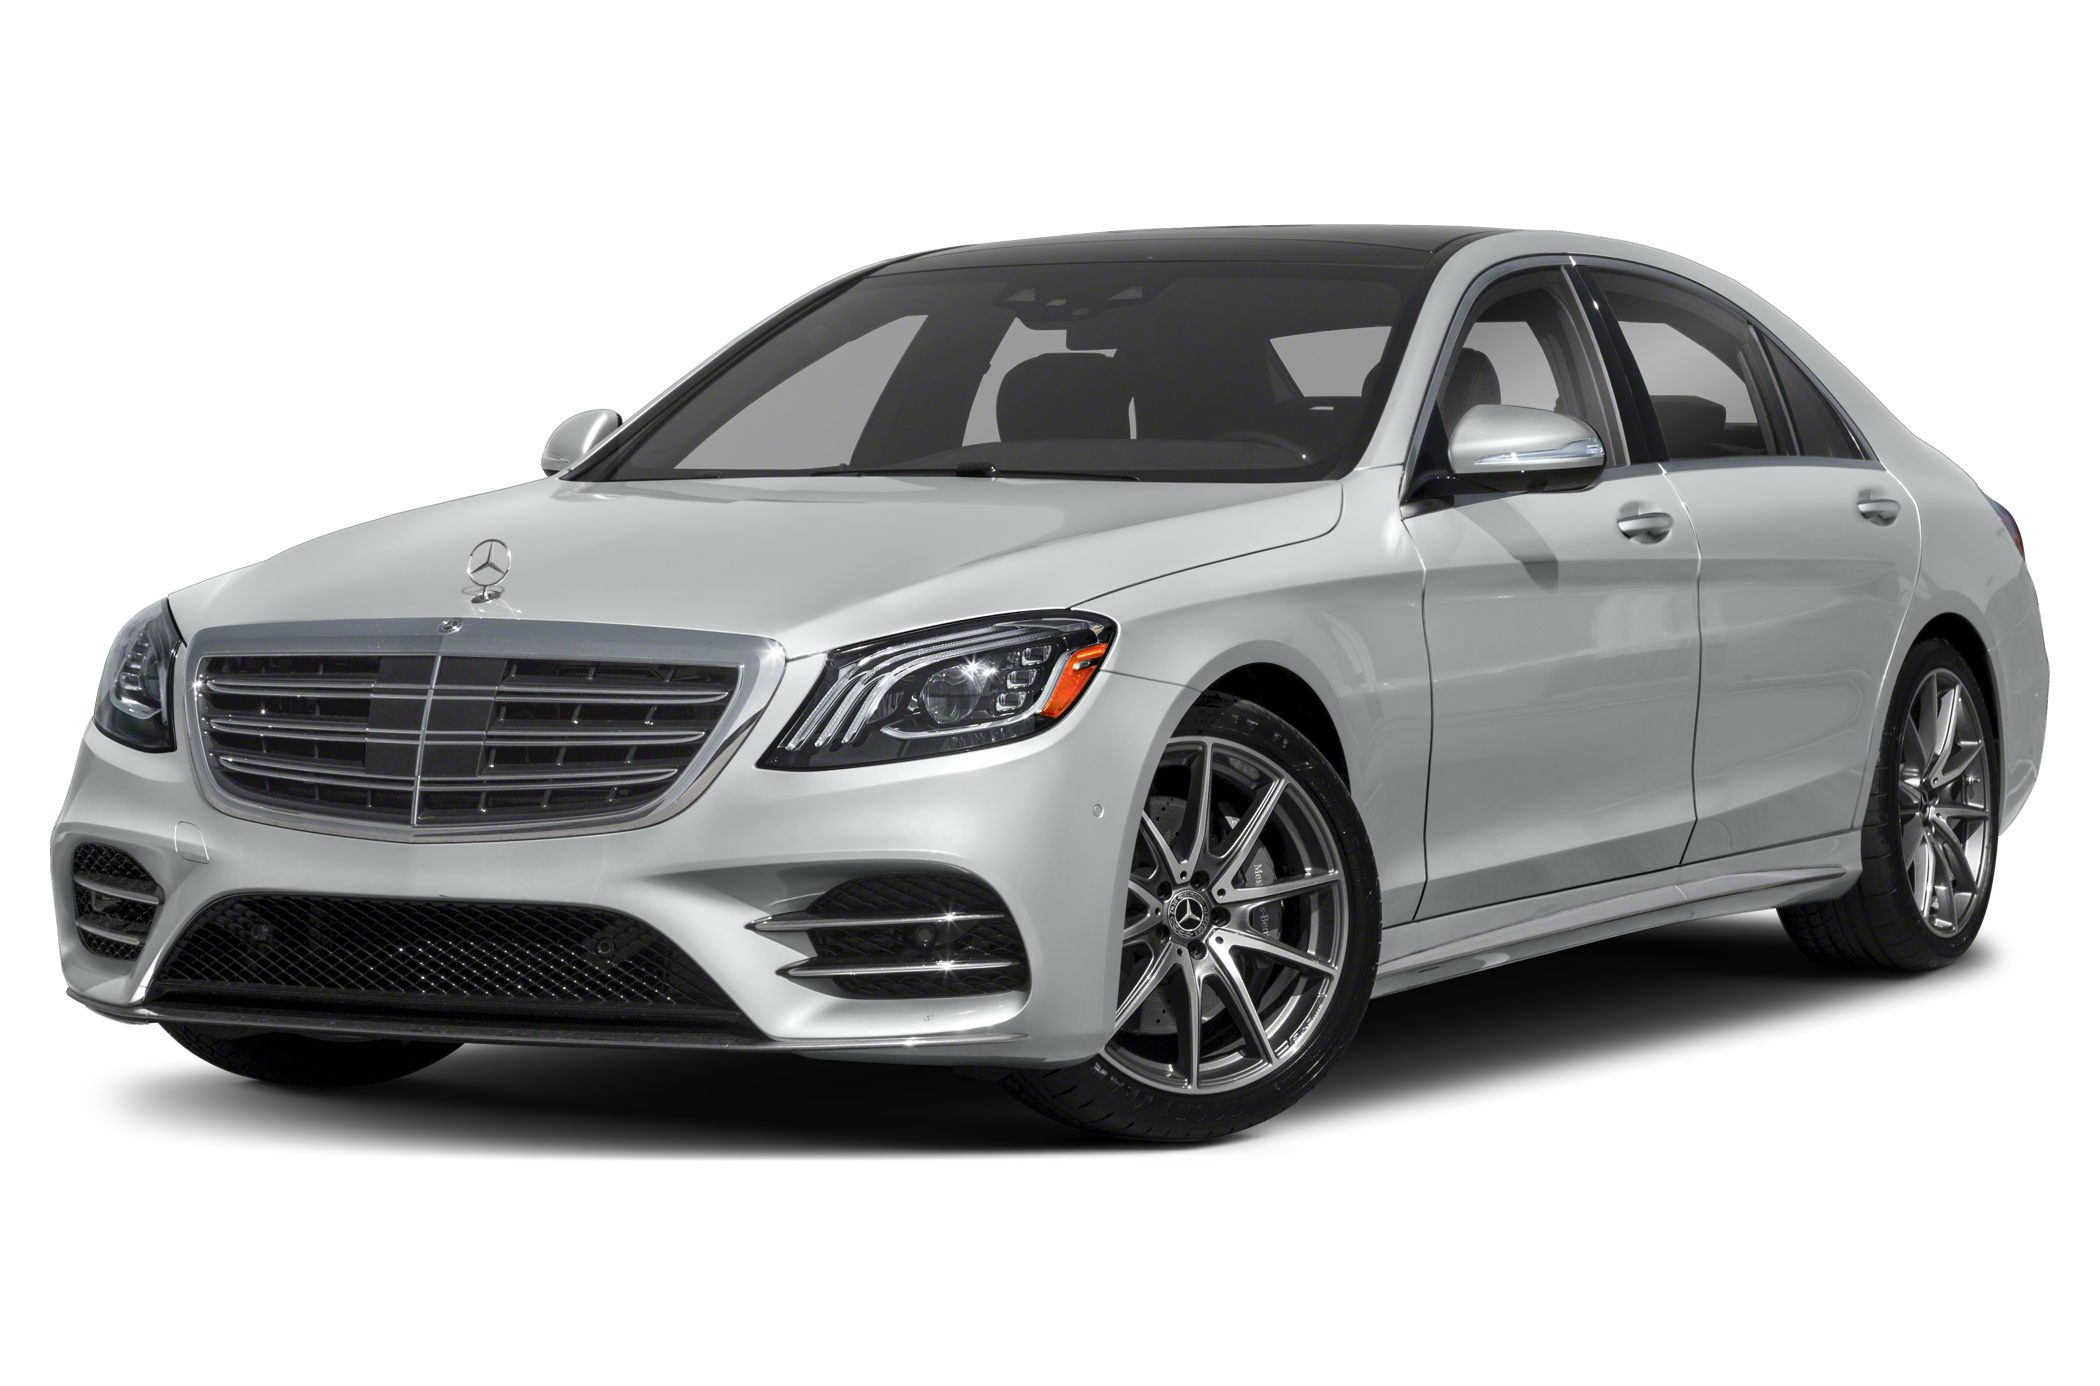 2015 Mercedes-Benz S63 AMG Coupe bringing big, fast style to New York